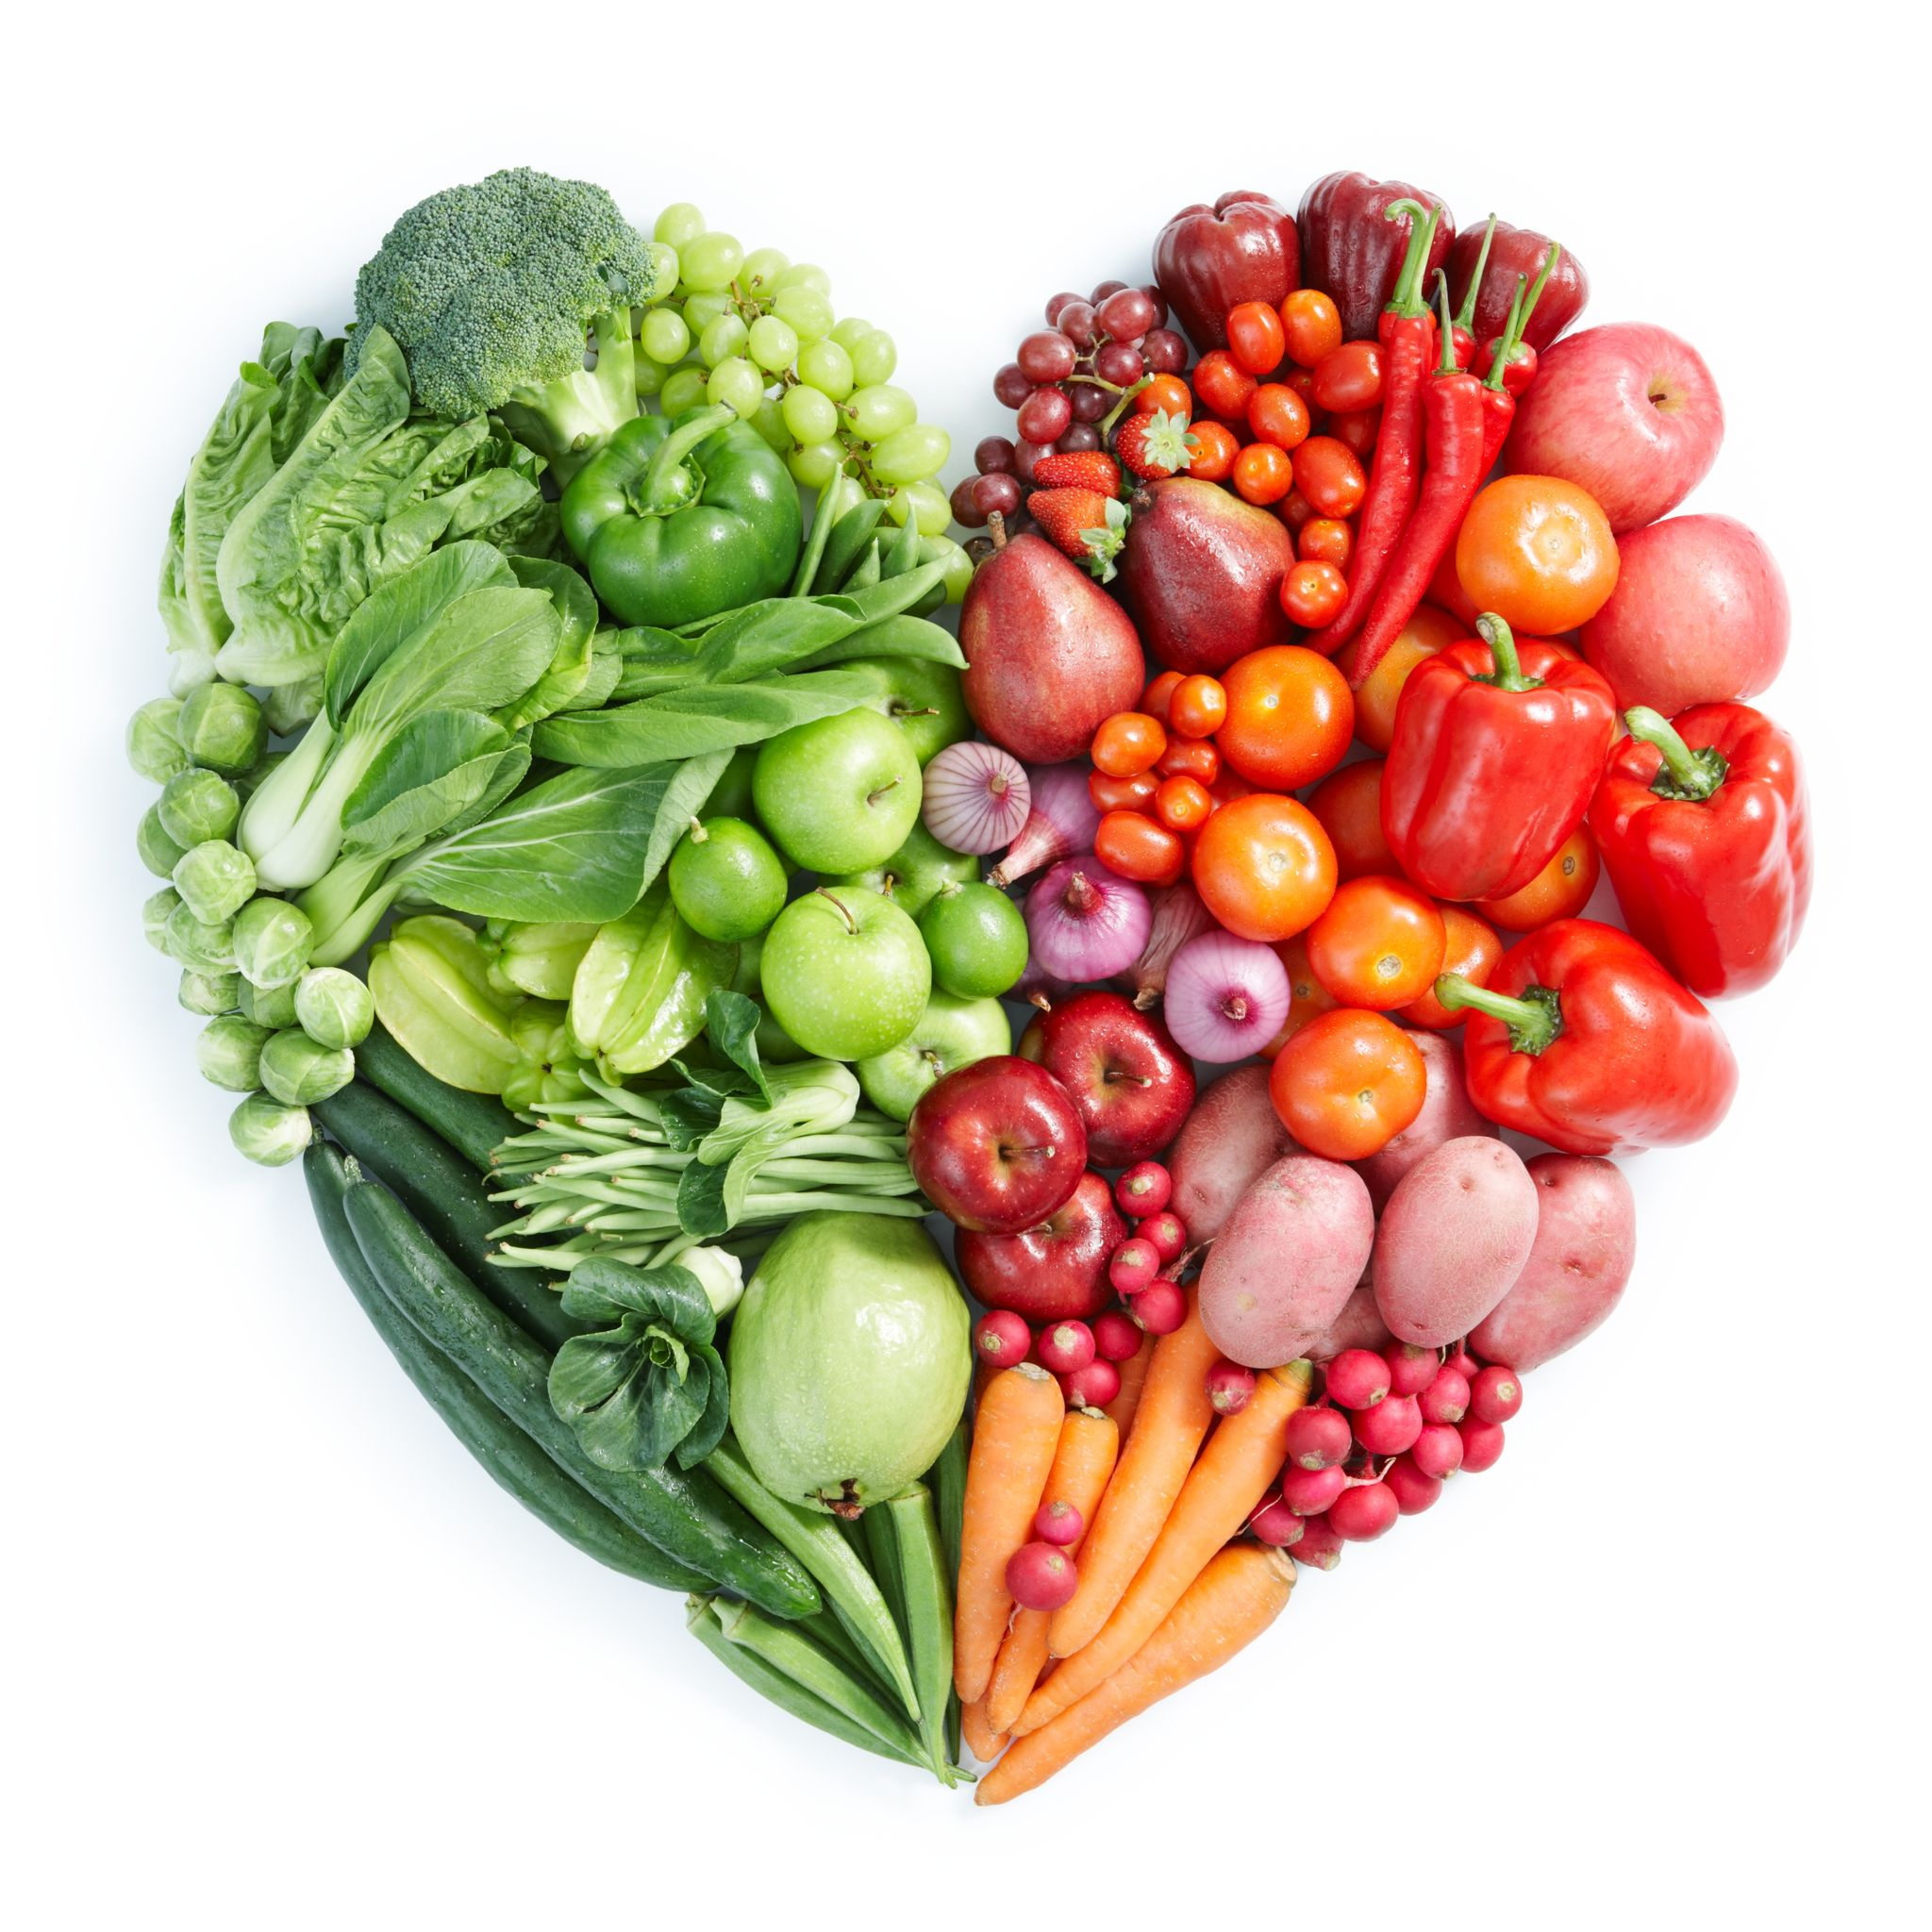 What Are the Best Foods to Eat Daily for Heart Health?